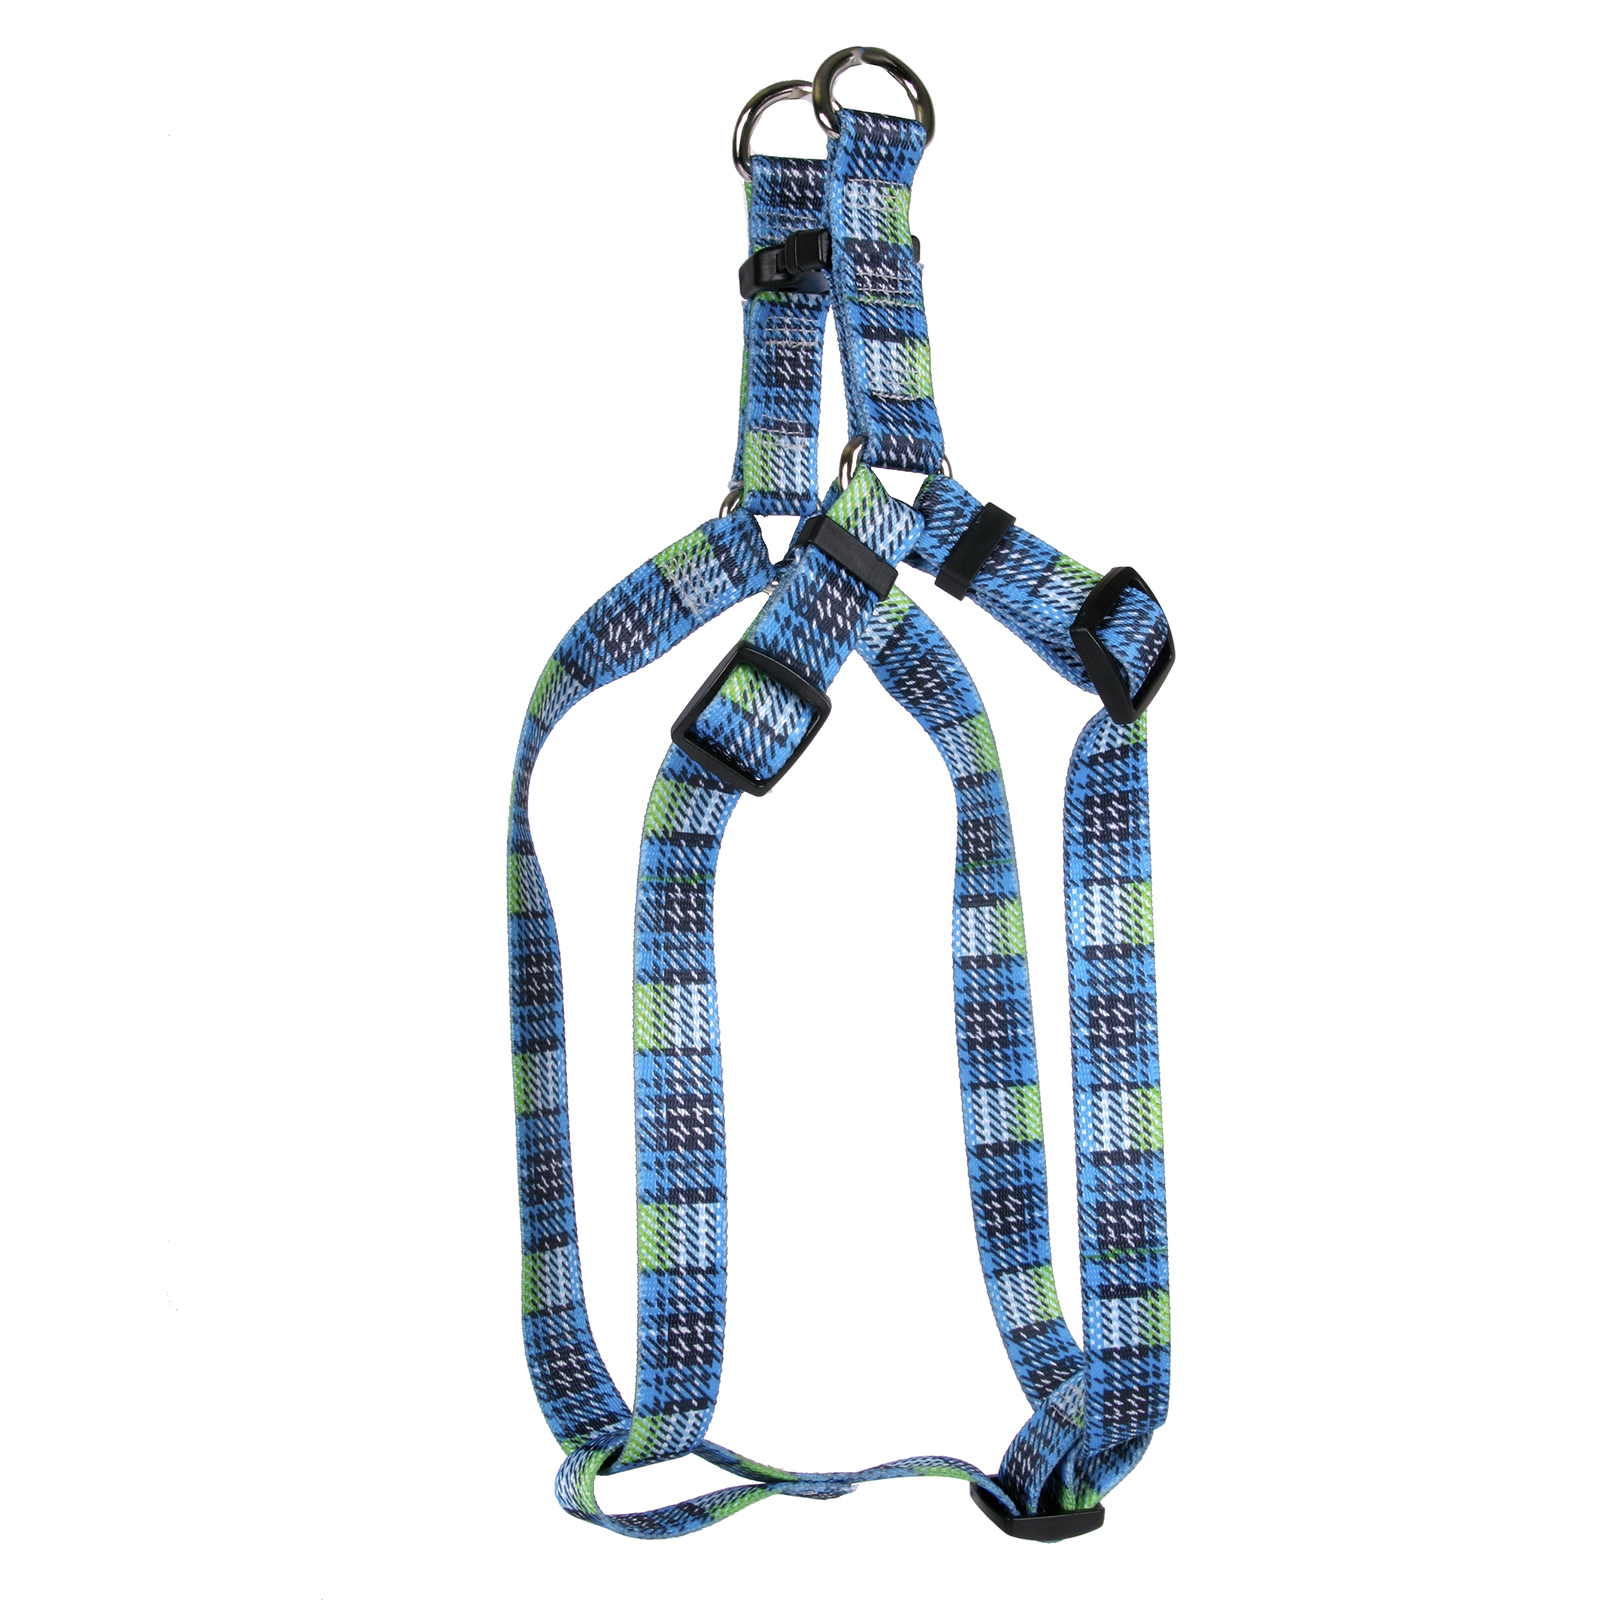 Highland Plaid Blue and Black Step-In Harness